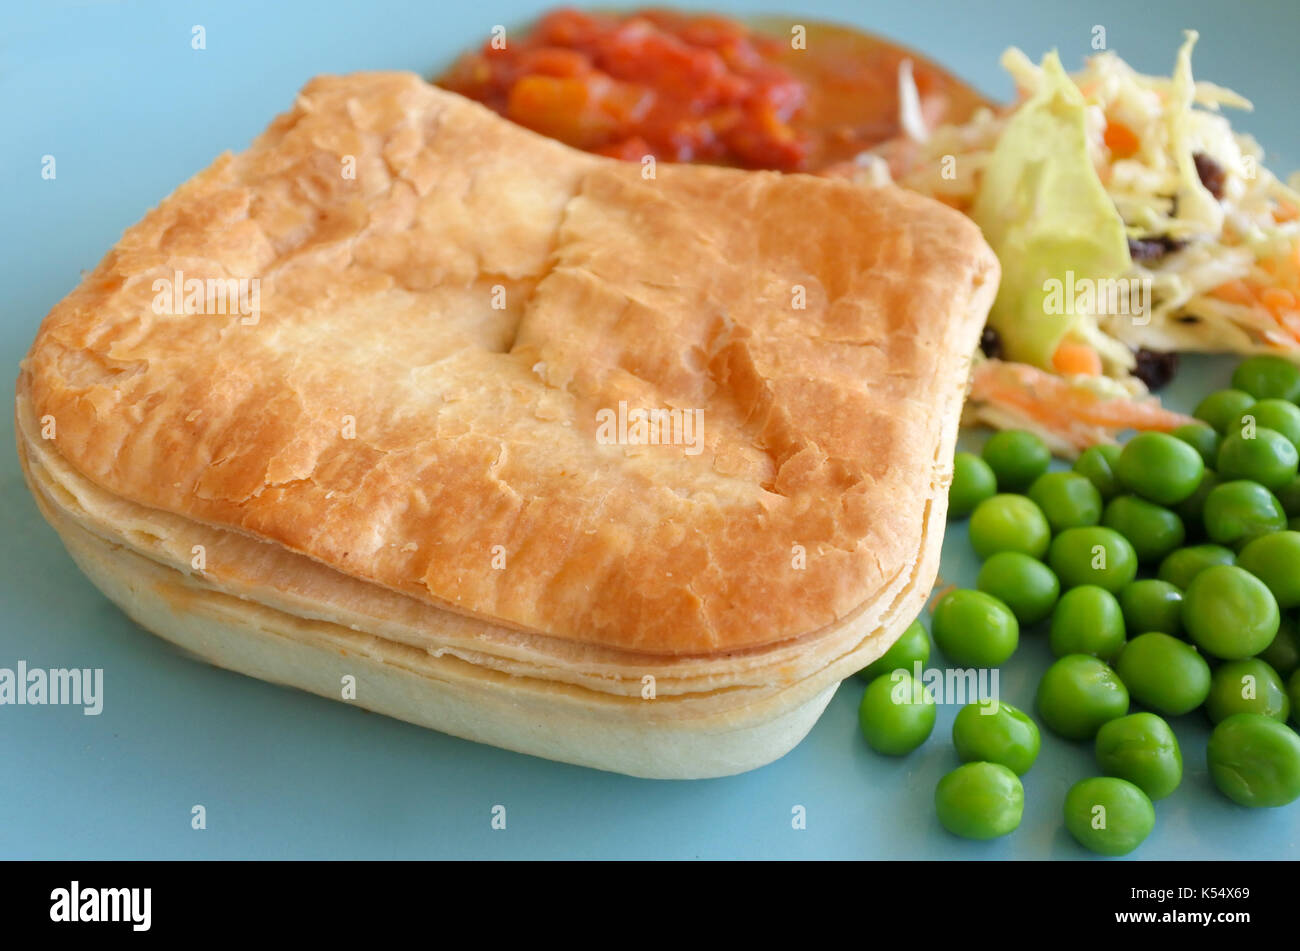 Mince meat pie served on a plate with pees coleslaw salad and tomato sauce. & New Zealand Beef Mince Stock Photos \u0026 New Zealand Beef Mince Stock ...